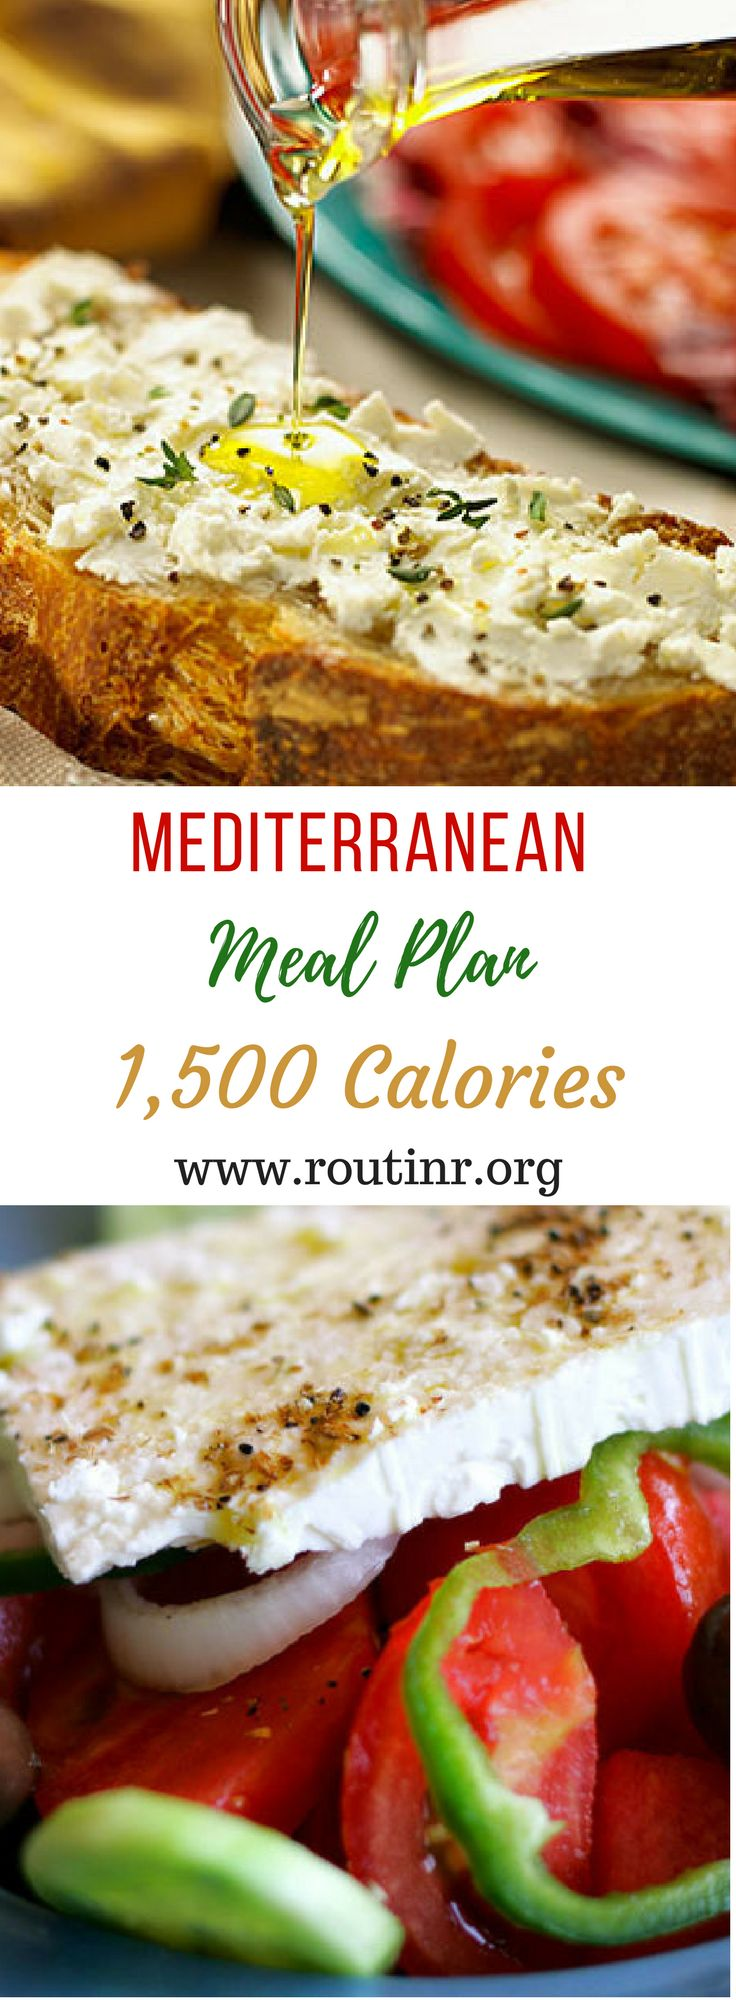 Mediterranean Diet Meal Plans: Mediterranean Meal Plan: 1,500 Calories. If you're looking for a heart-healthy eating plan, the Mediterranean diet might be right for you. Find out more at: https://routinr.org/routines/mediterranean-meal-plan-1-500-calories #themediterraneandiet